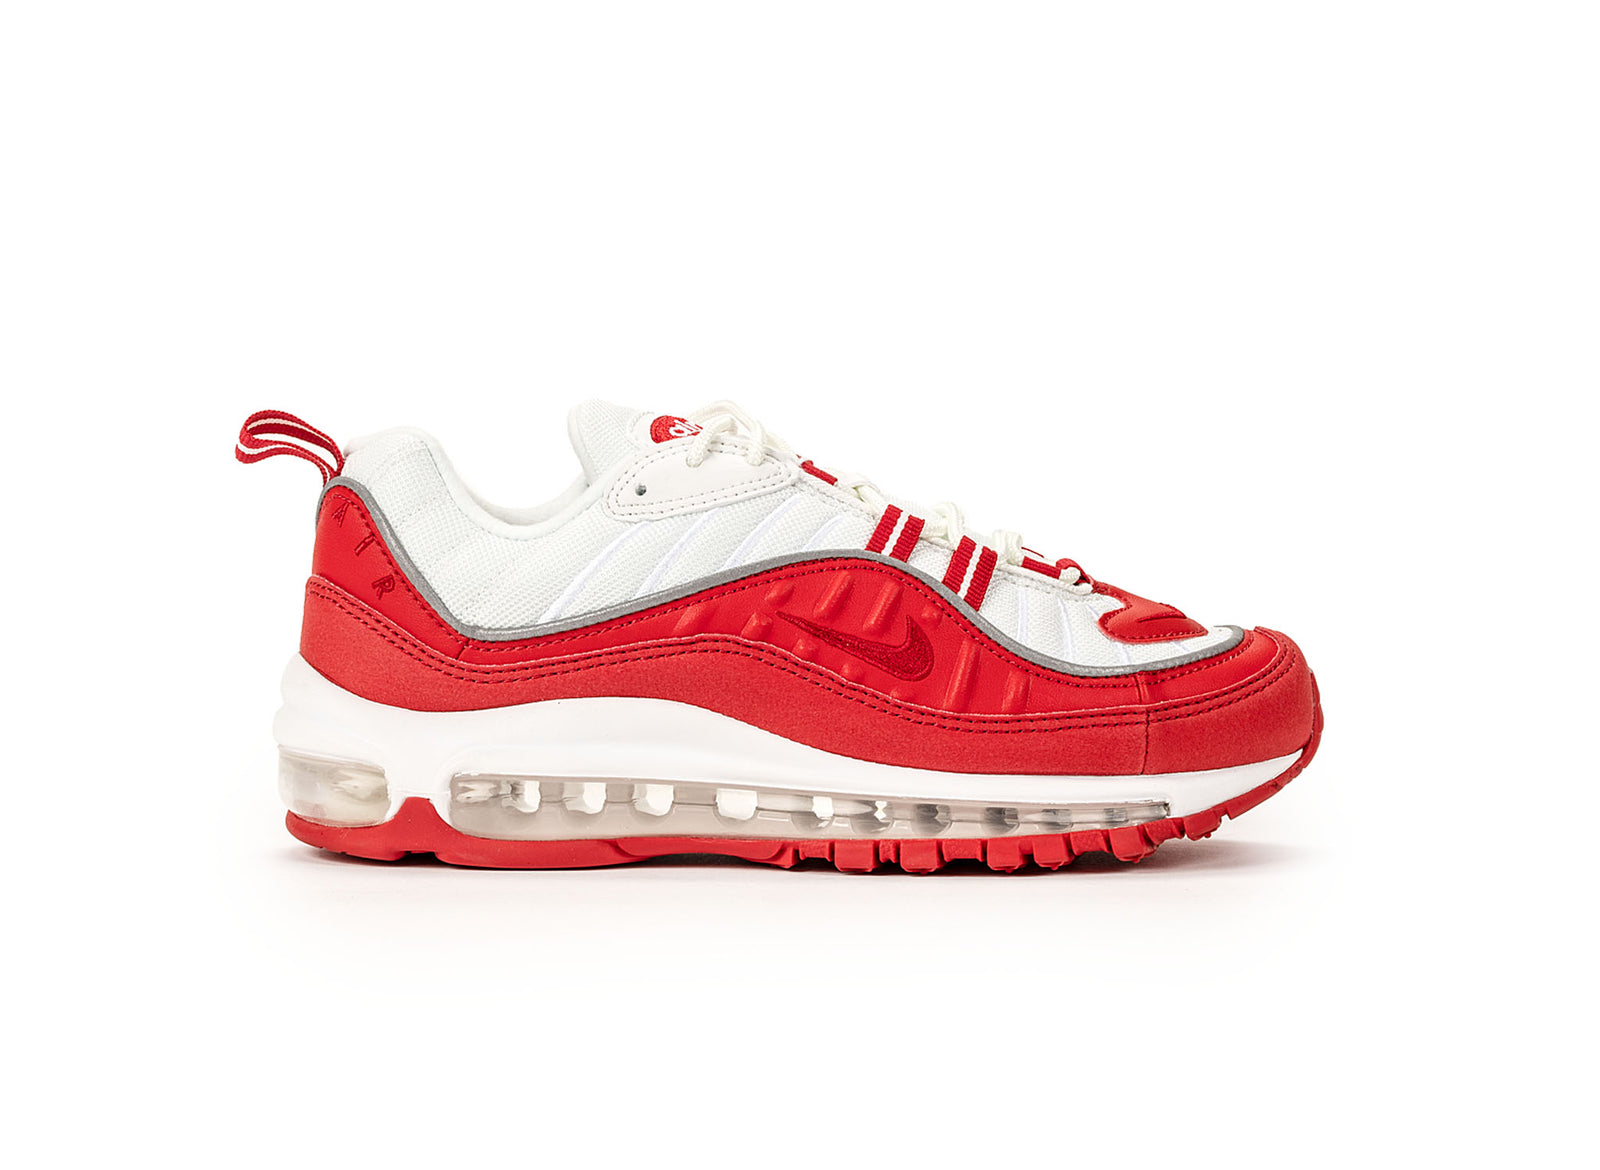 new style b222b 34ab4 Nike Air Max 98 GS - University Red